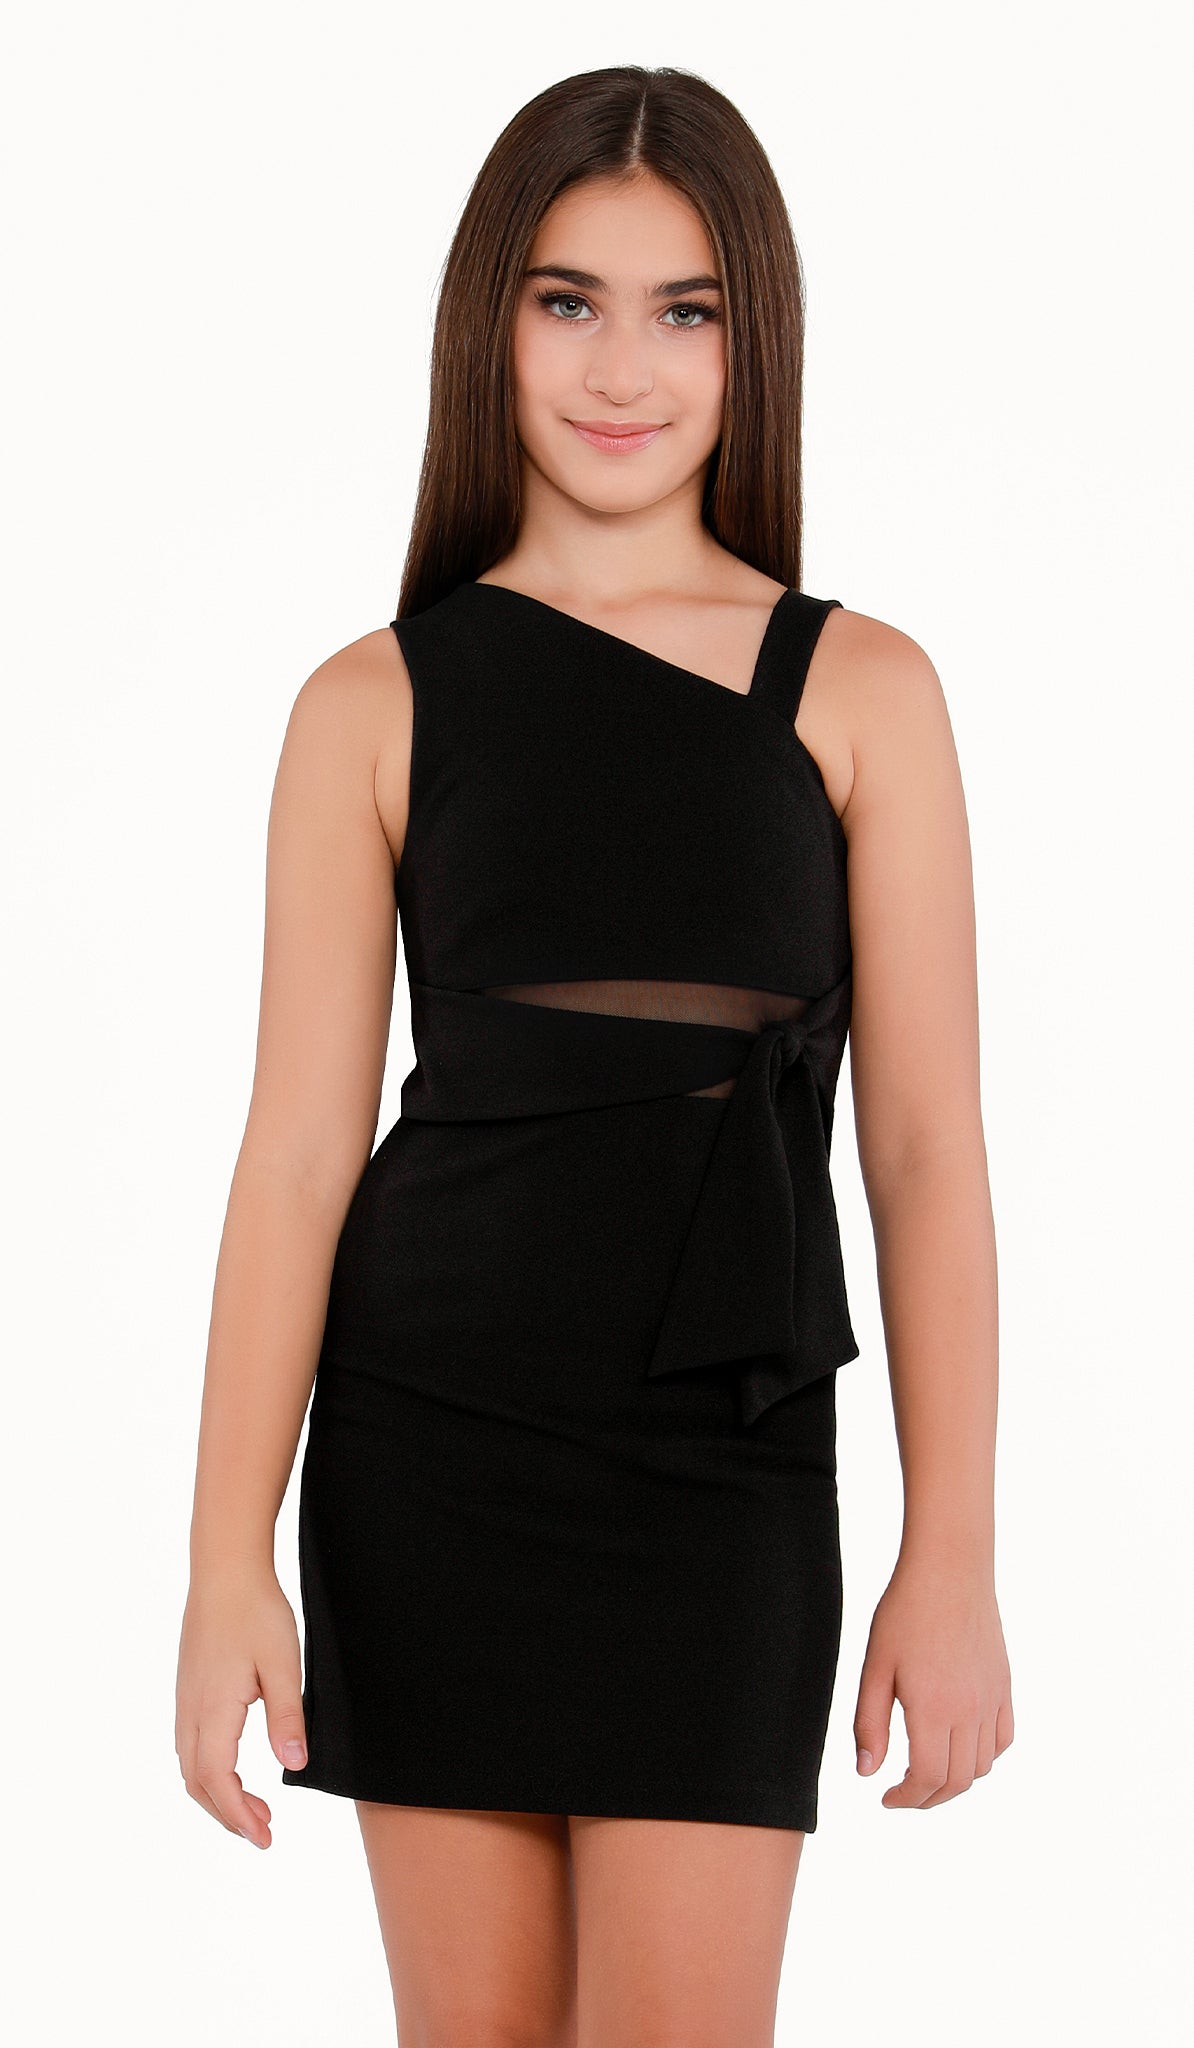 Sally Miller Devin Dress | Black stretch crepe georgette bodycon dress with mesh illusion and ties at waist